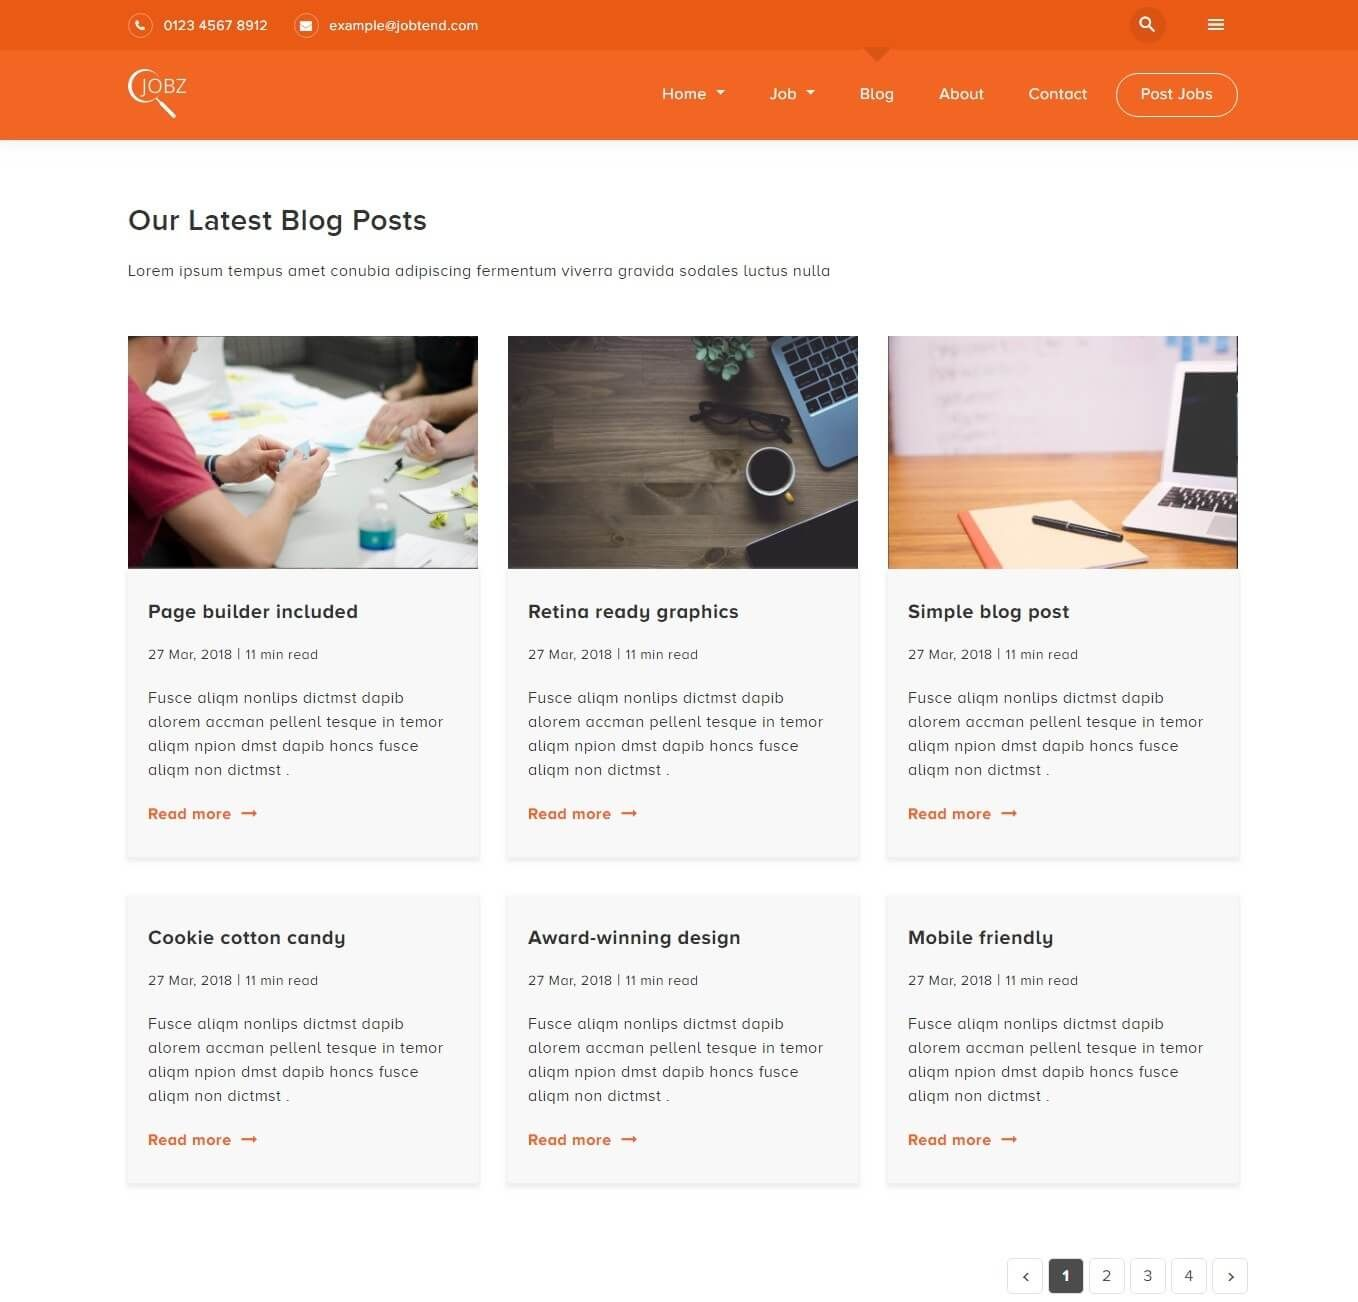 Jobtend Job Board Html Template Is Made For Job Seeker Head Hunter Job Market Service Other Related Niches In The Industry Th Job Board Marketing Jobs Job